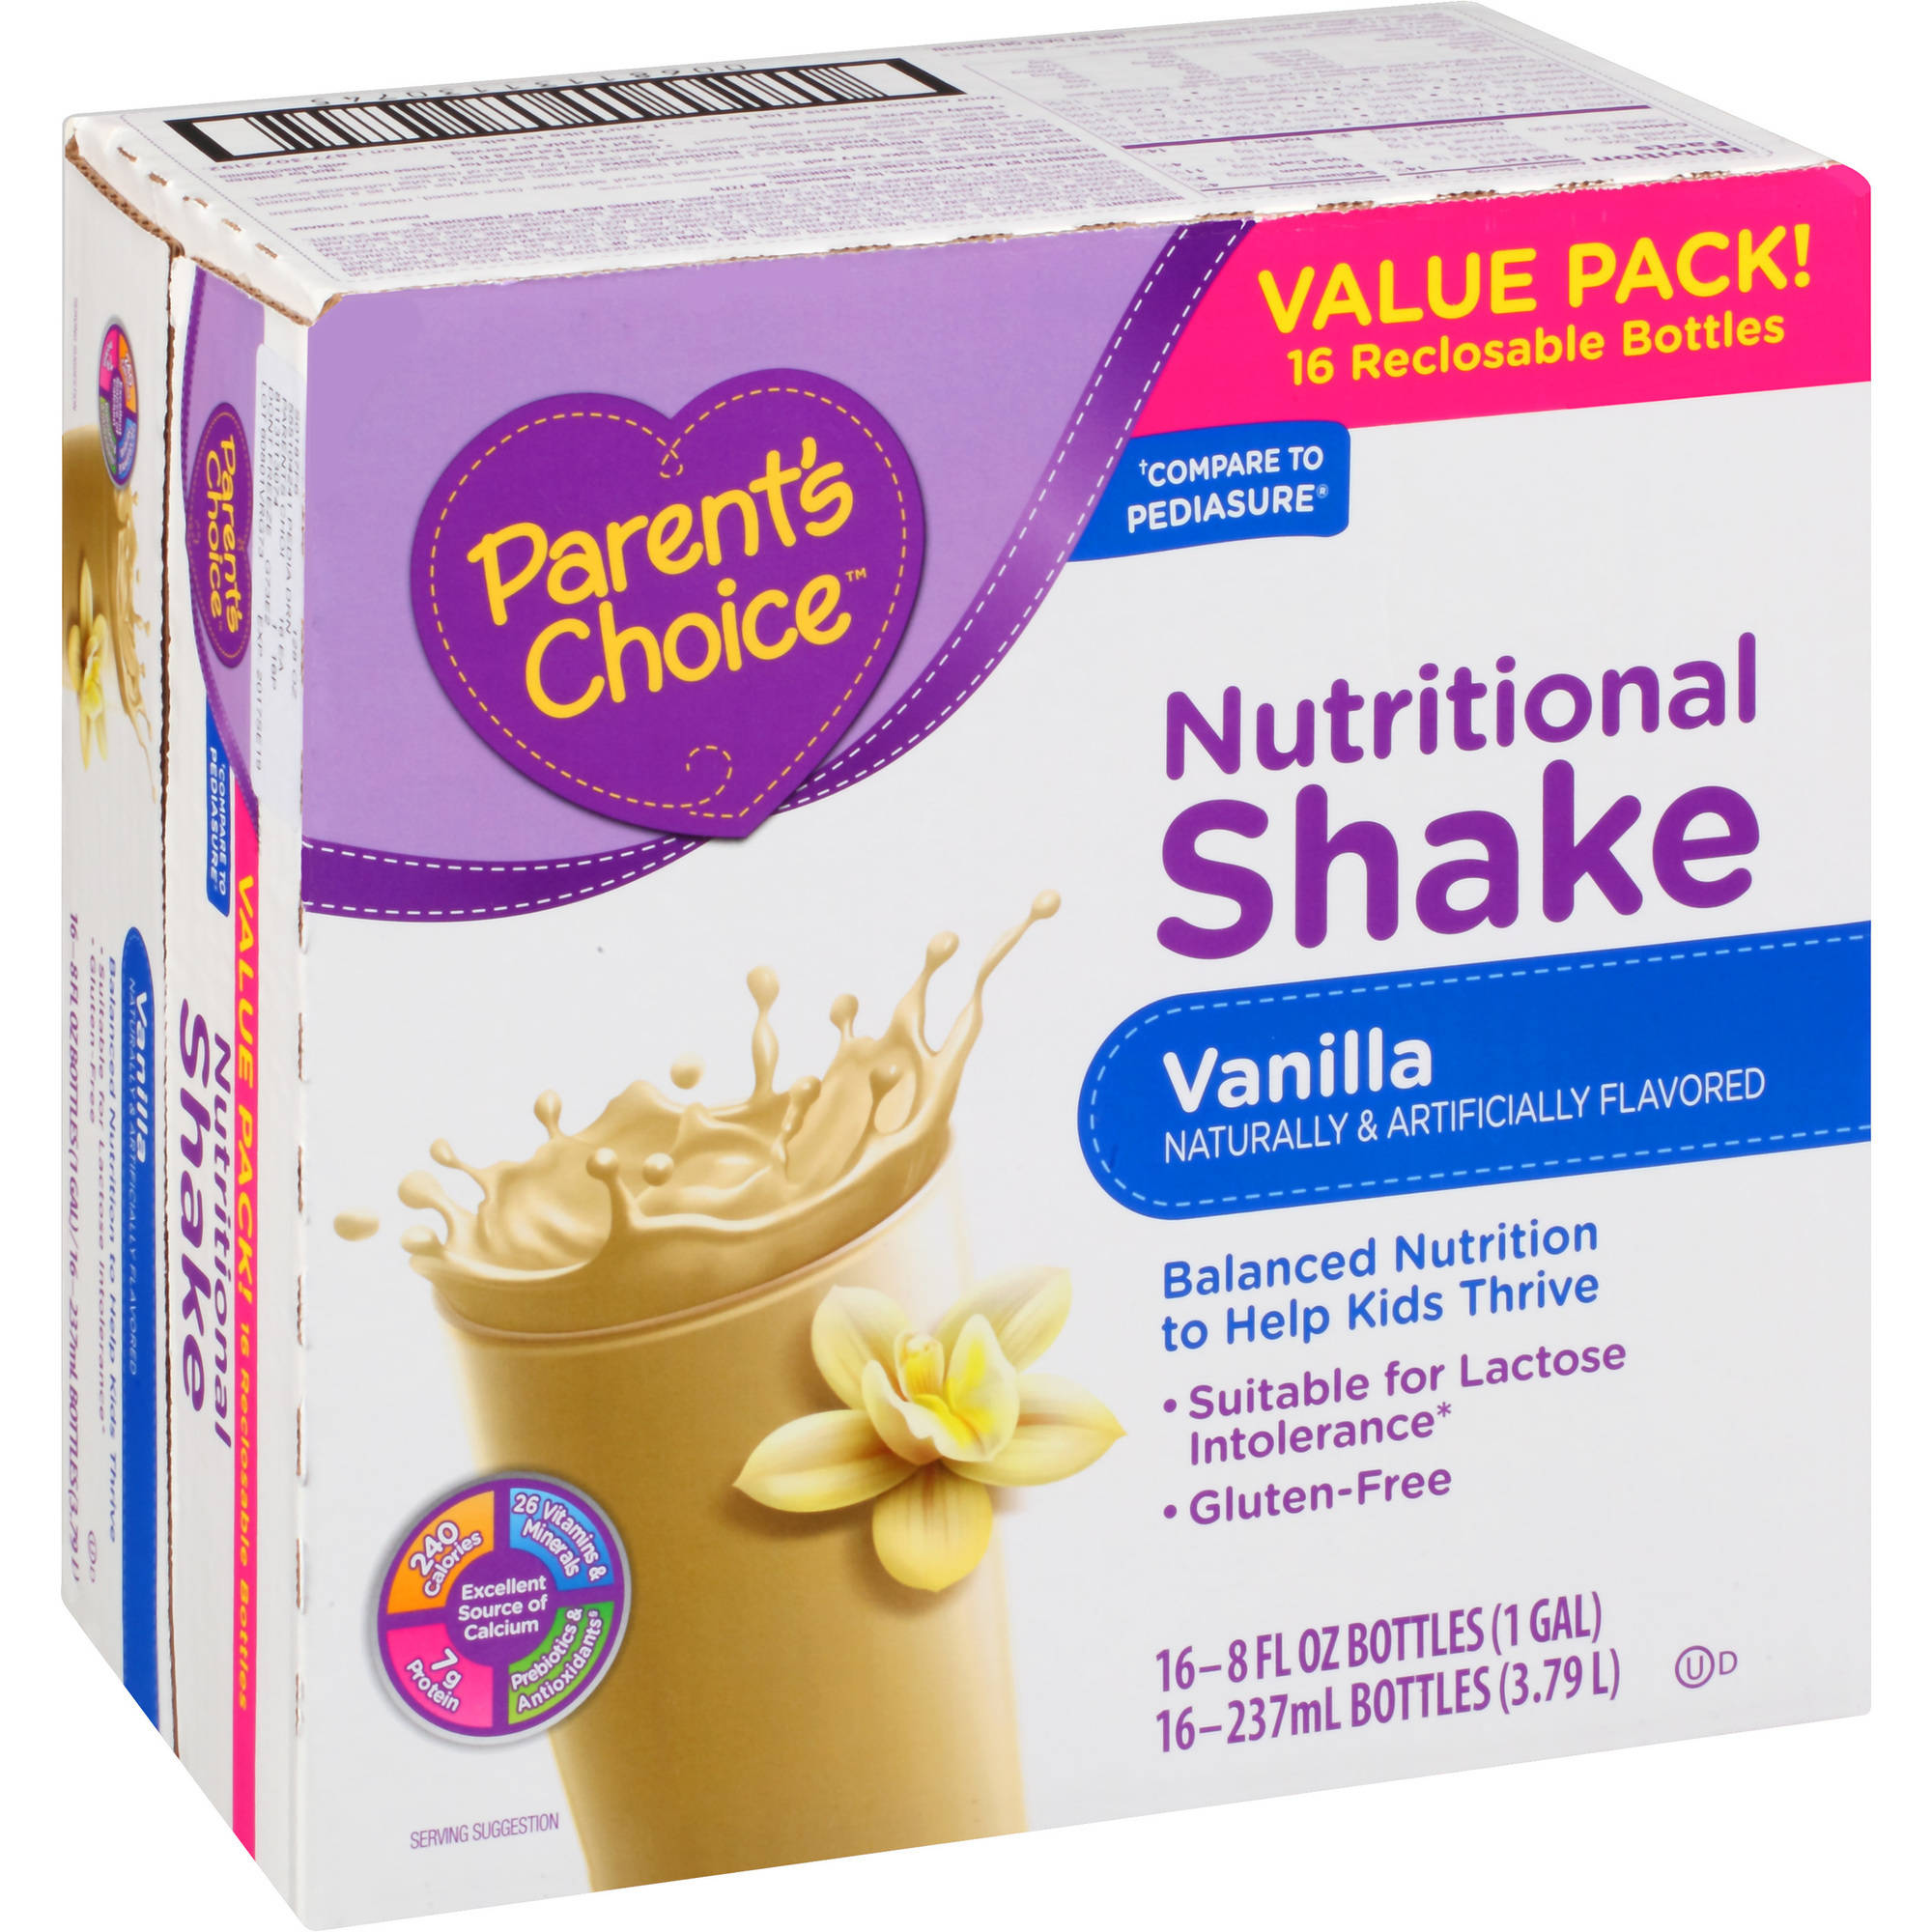 Parent's Choice Vanilla Nutritional Shakes, 8 fl oz, 16 count